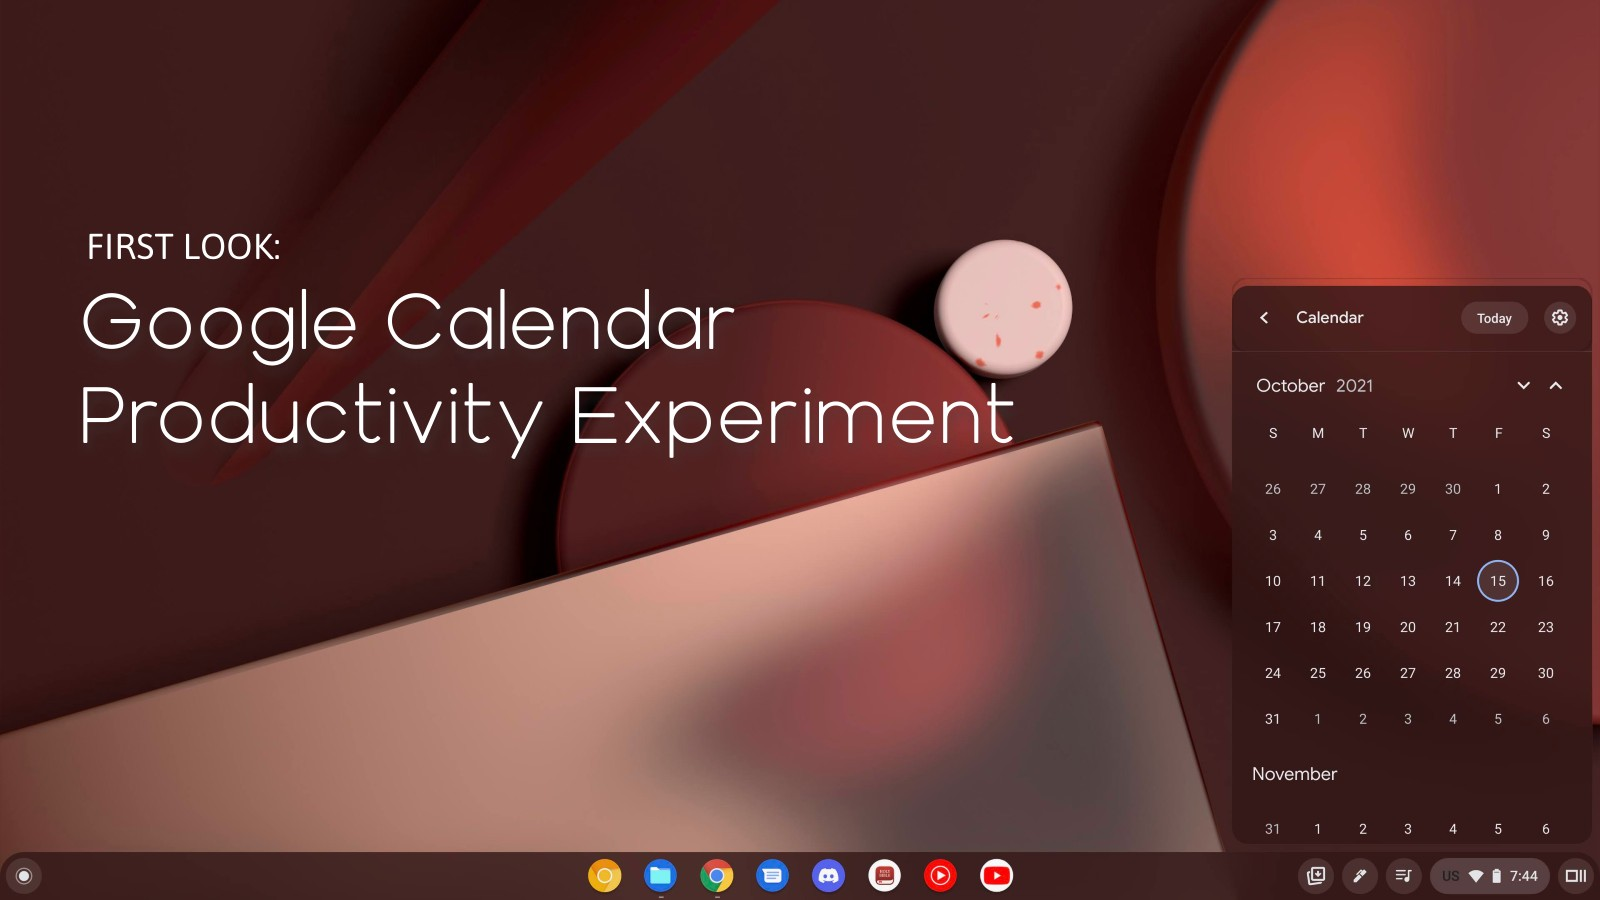 First Look: Google Calendar Chromebook productivity experiment officially appears